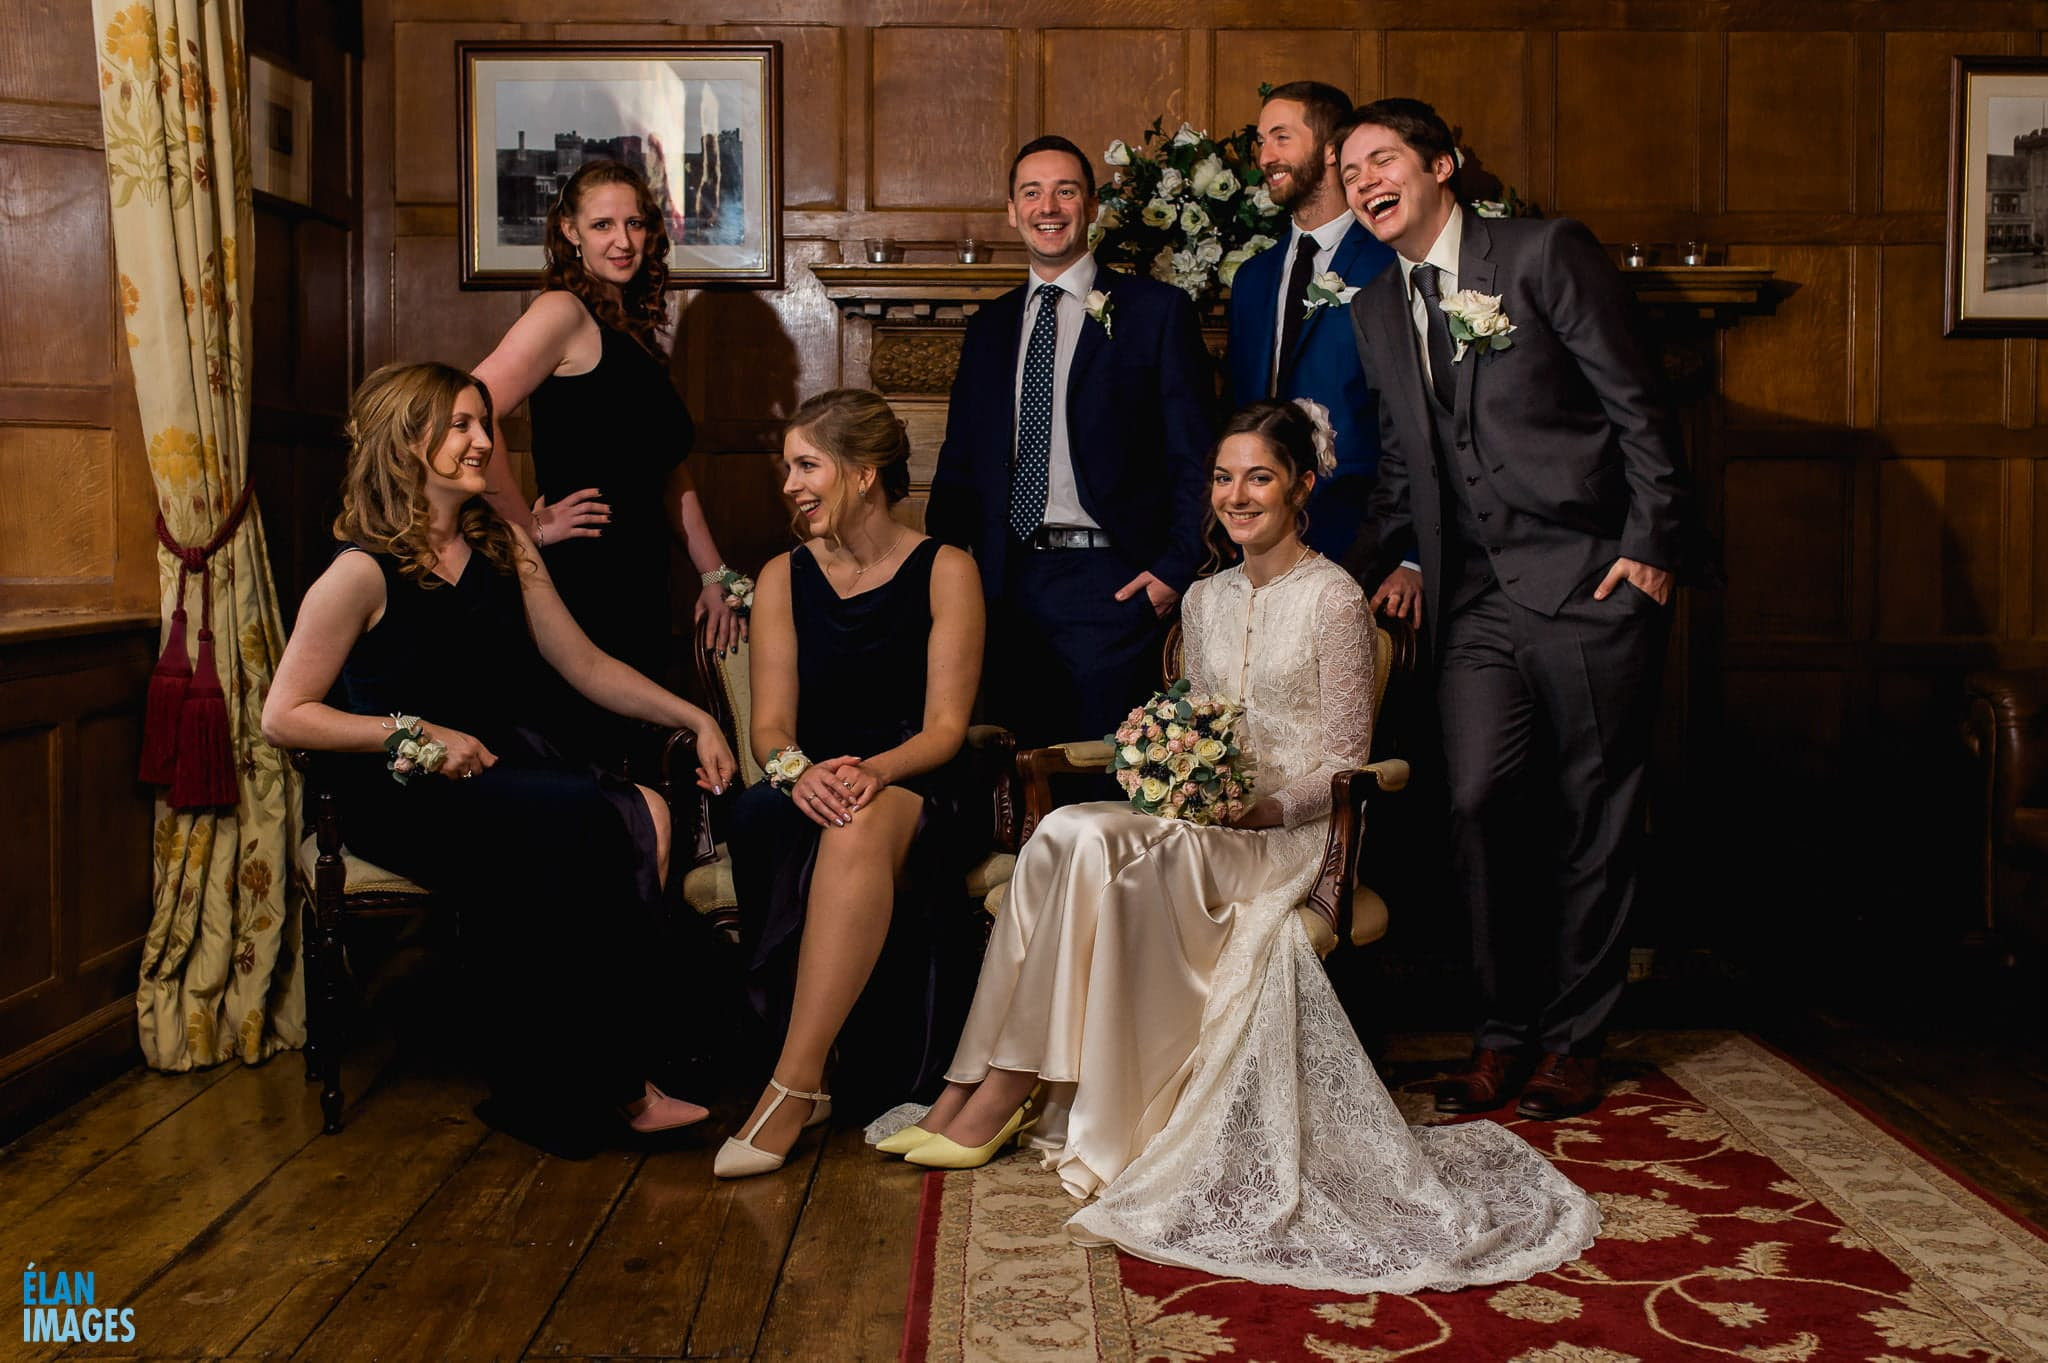 Wedding at Leez Priory, Essex 32